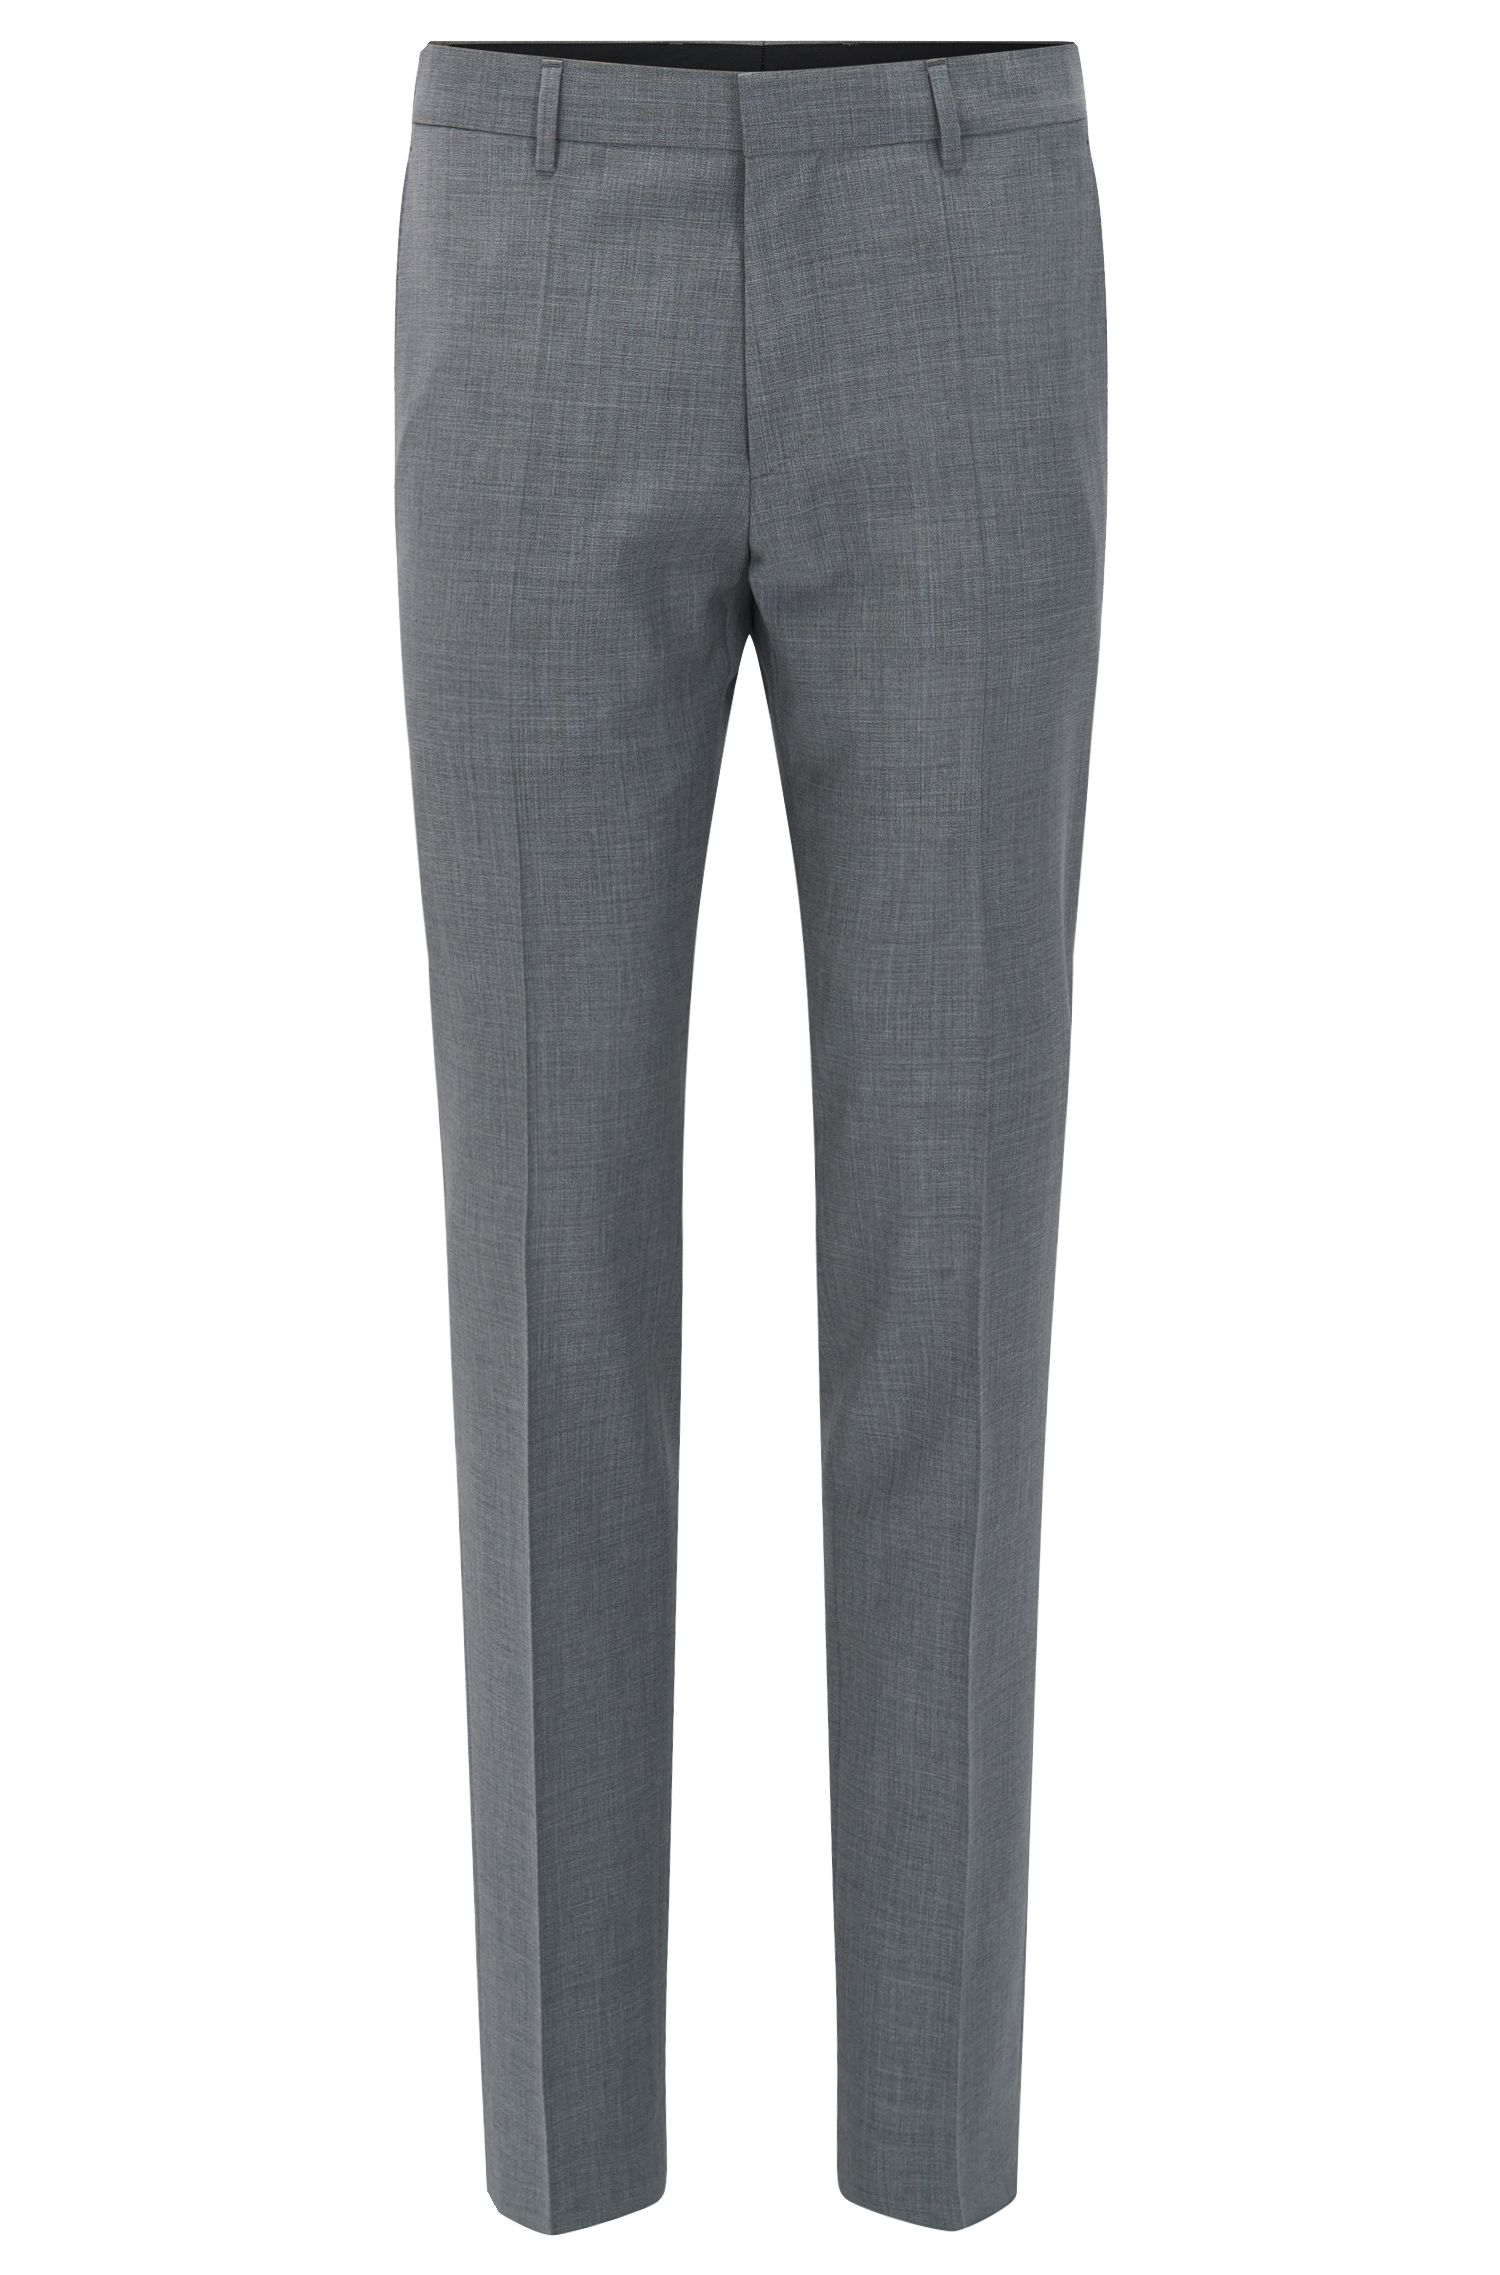 Virgin Wool Cashmere Dress Pant, Slim Fit | Genesis